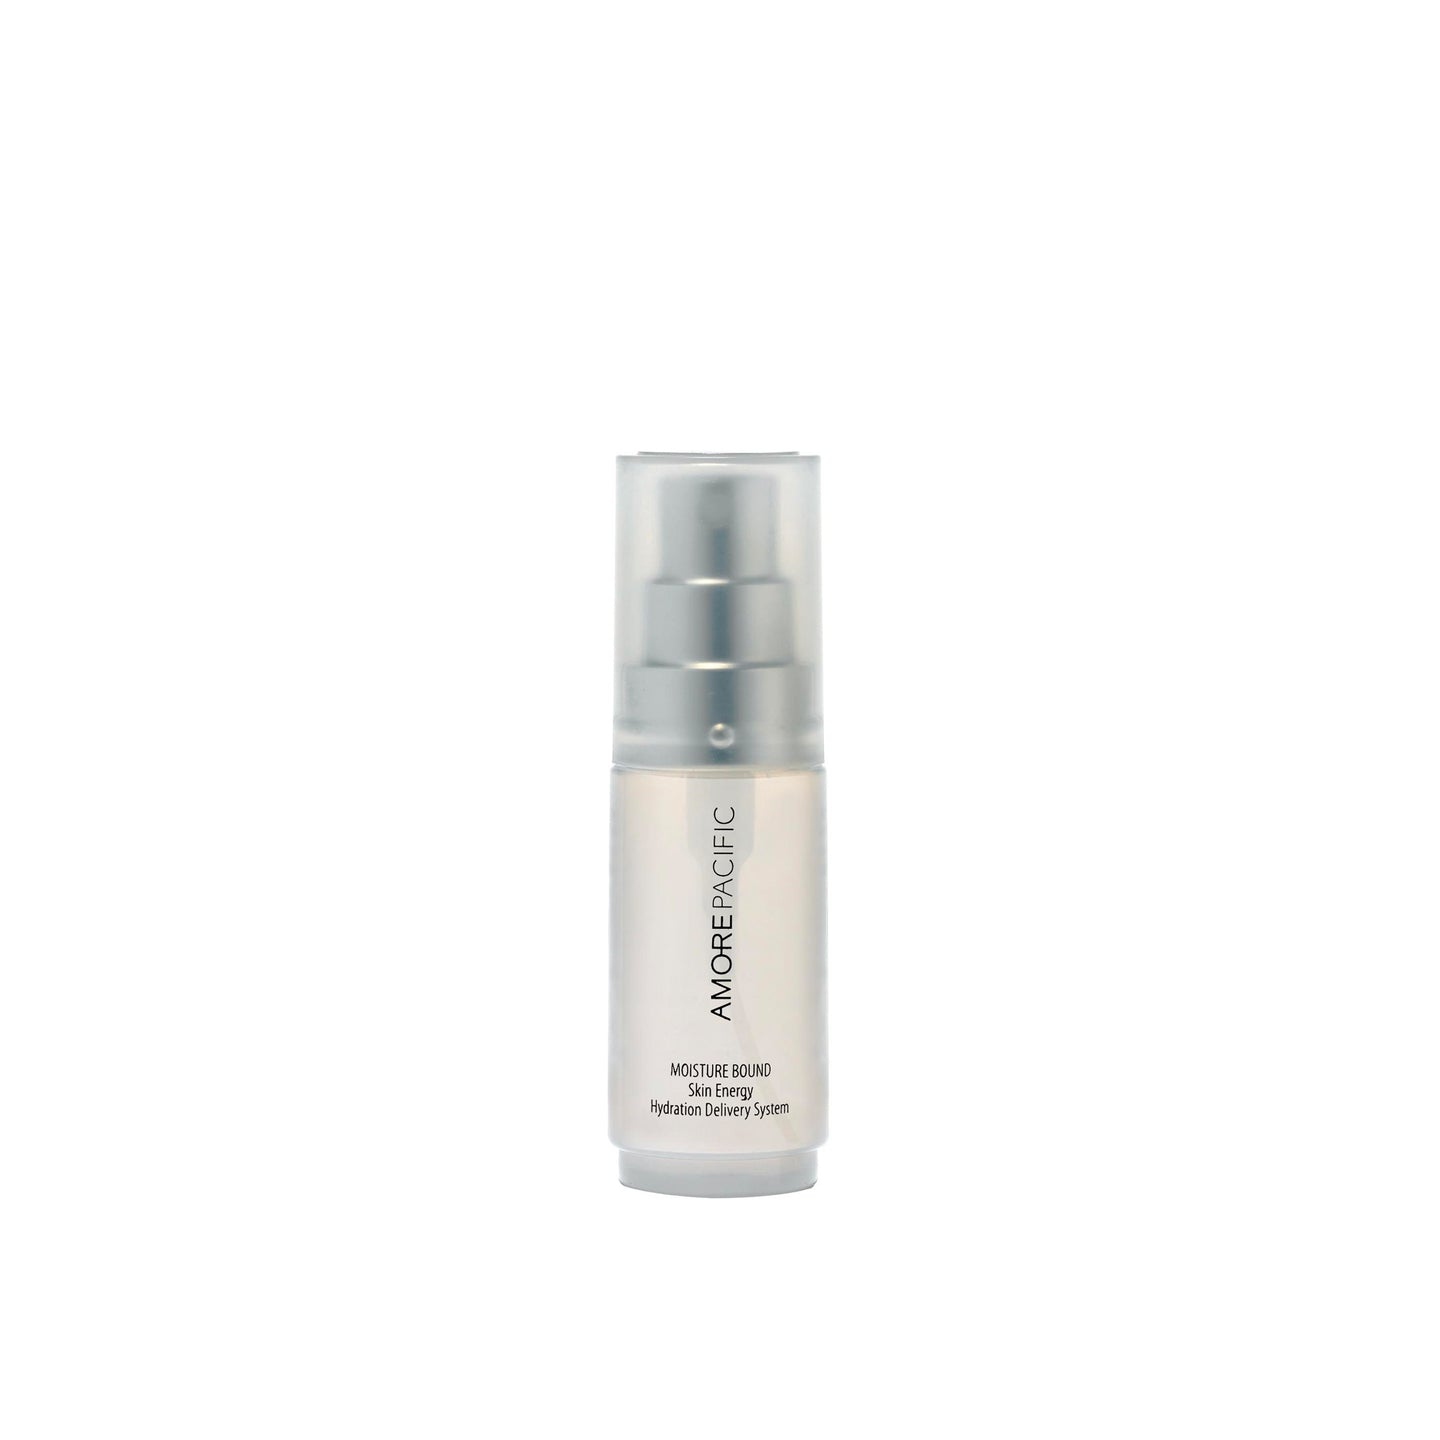 Moisture Bound Skin Energy Mist (30ml)